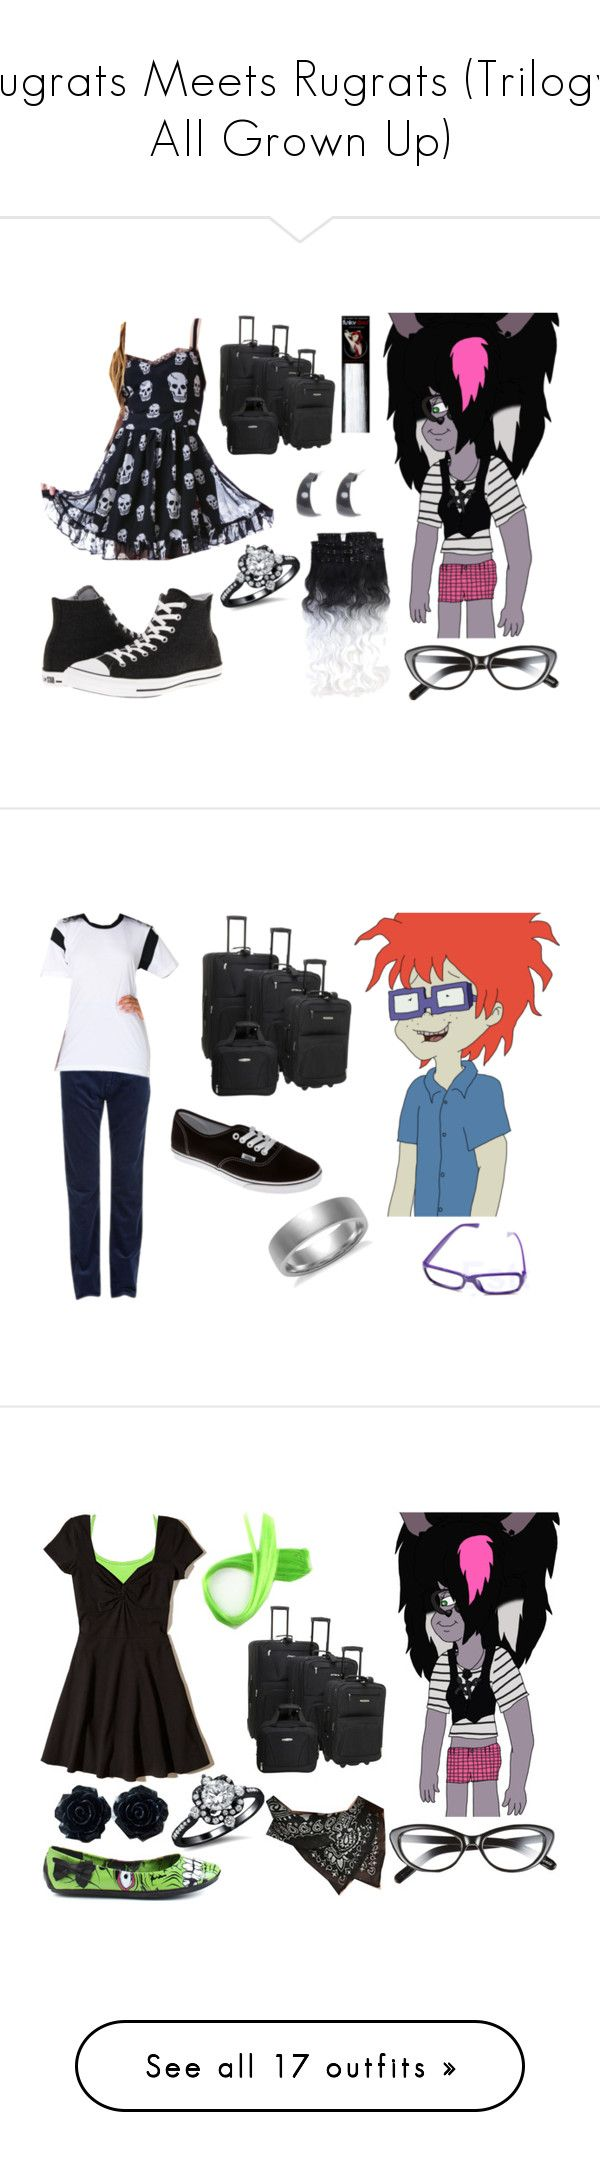 """""""Rugrats Meets Rugrats (Trilogy; All Grown Up)"""" by brainyxbat ❤ liked on Polyvore featuring Elizabeth and James, Tripp, Converse, claire's, Rockland Luggage, Blue Nile, GANT, American Apparel, Vans and men's fashion"""